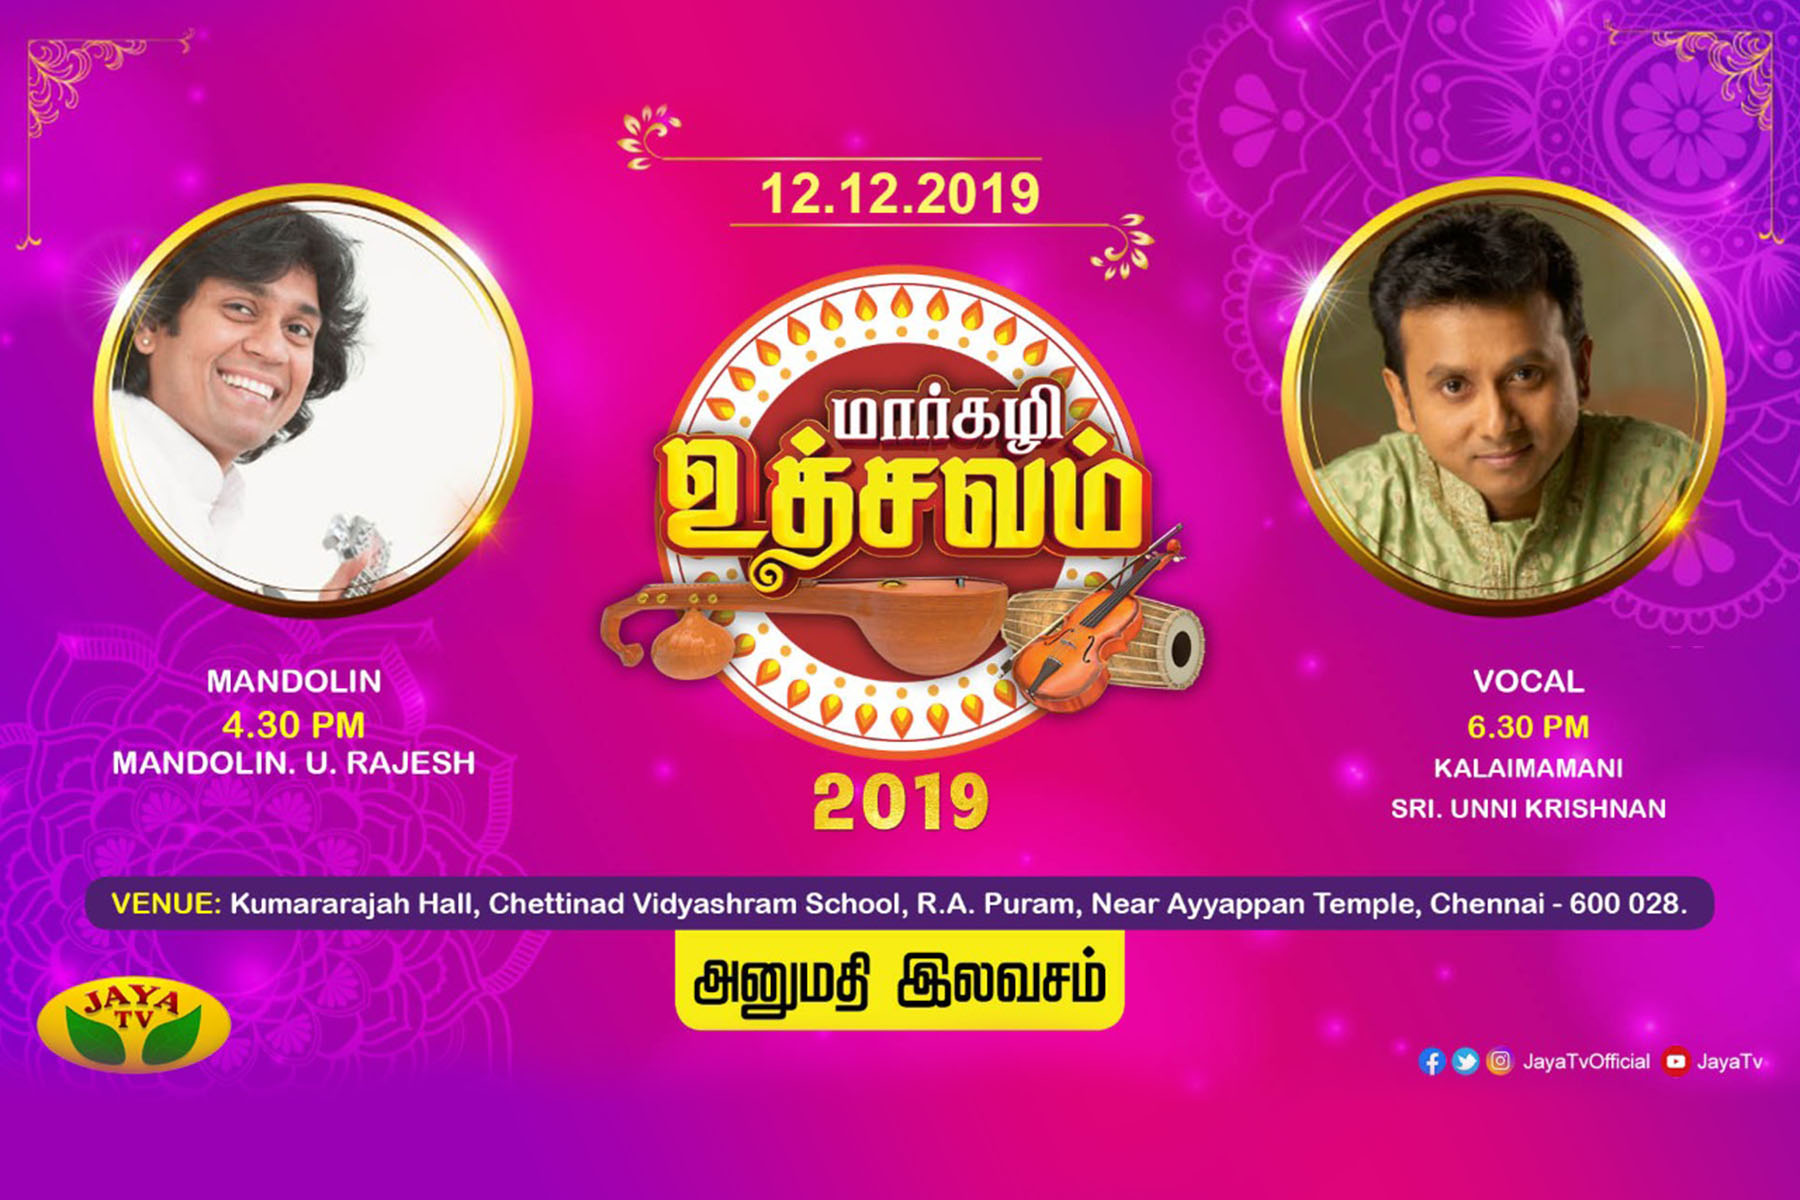 mandolin-u-rajesh-is-performing-today-at-jaya-tv-concert